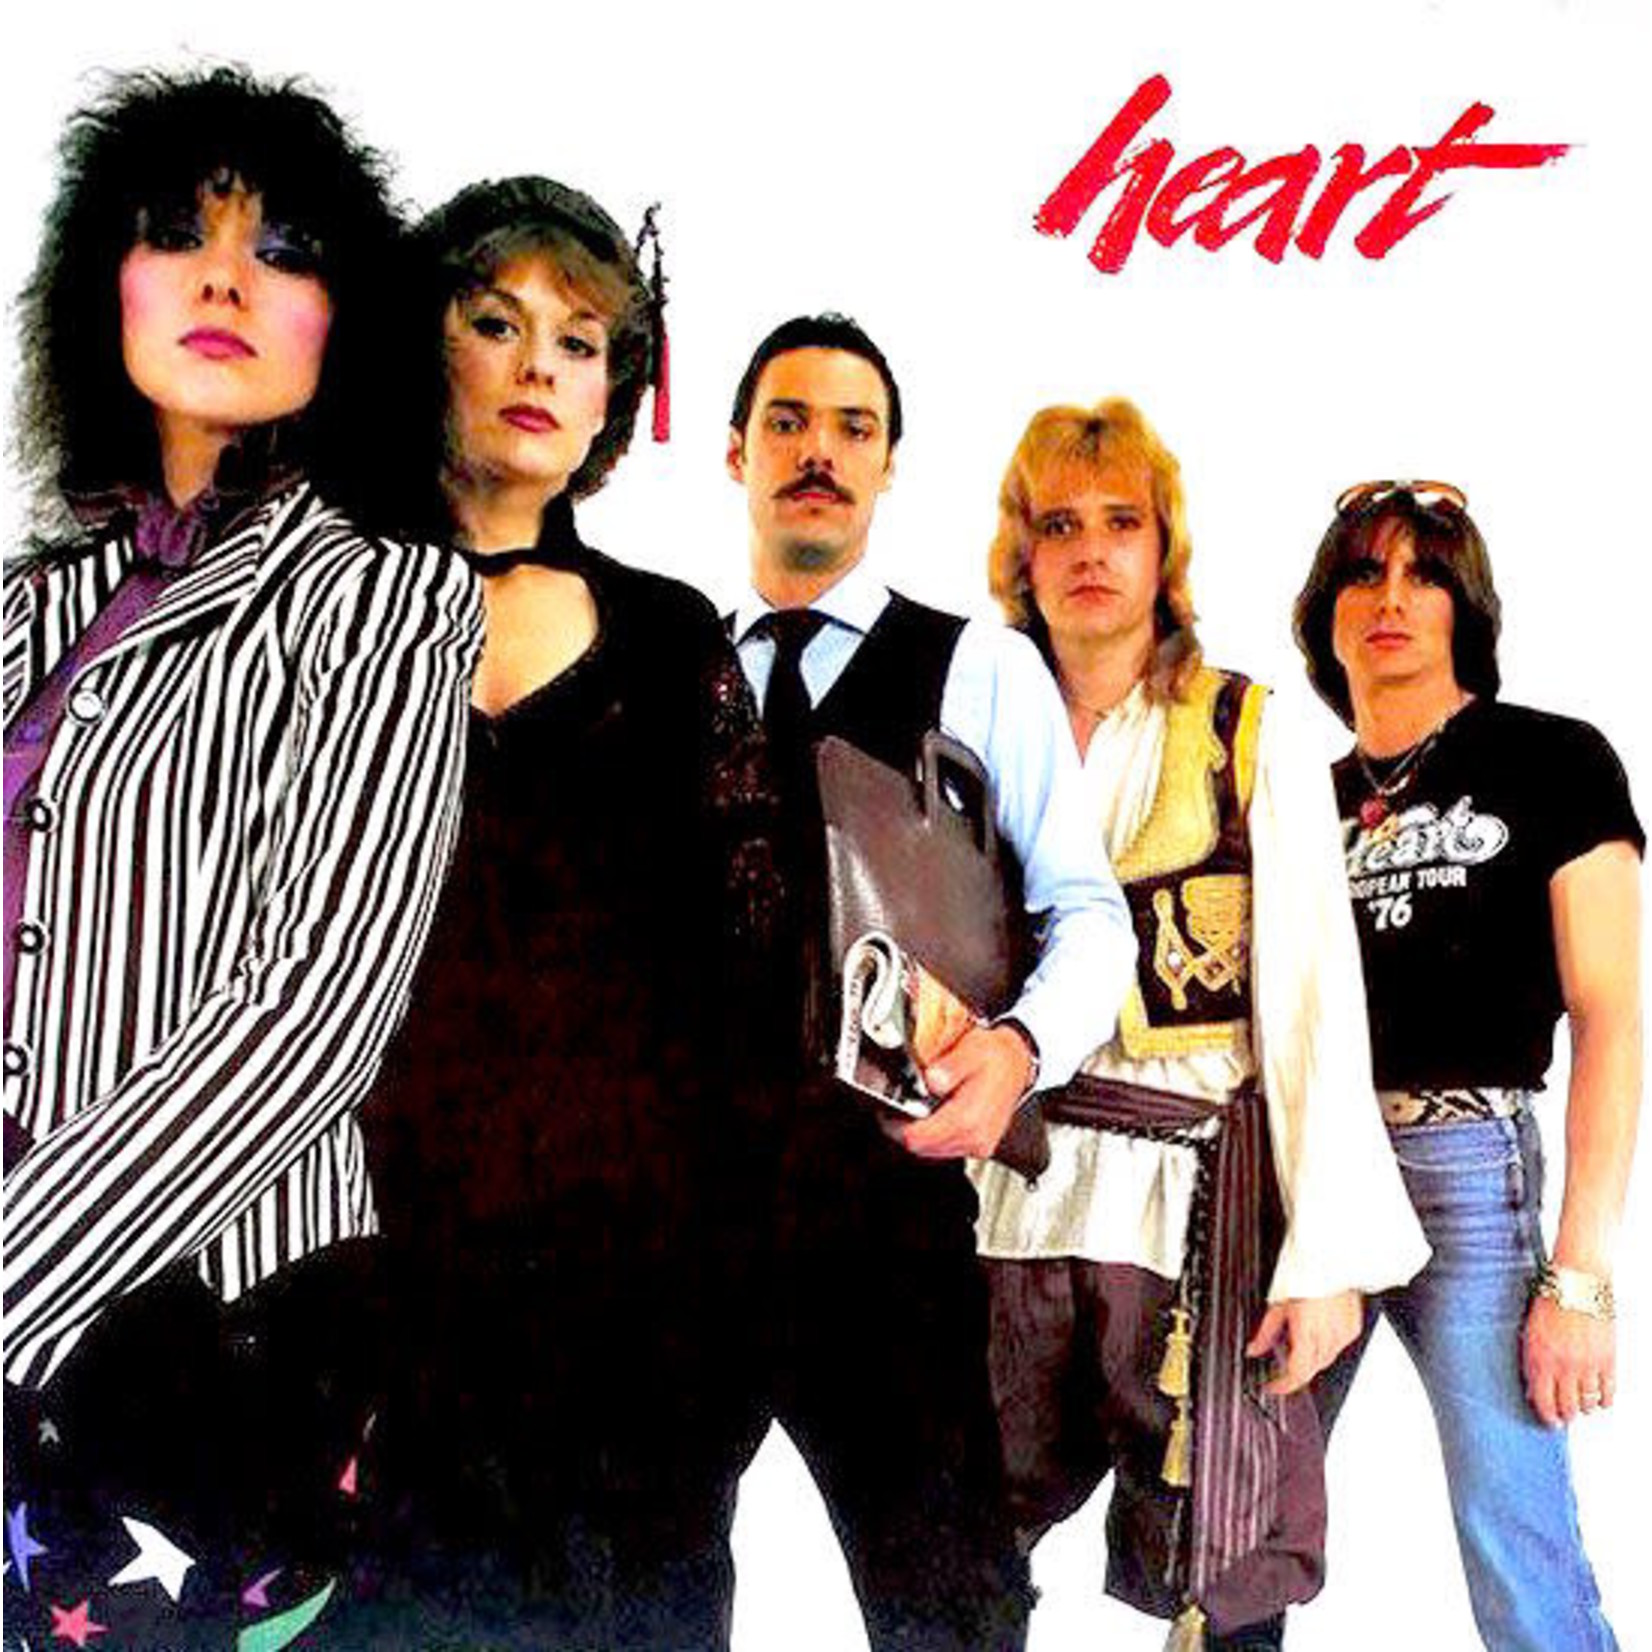 [Vintage] Heart: Greatest Hits Live